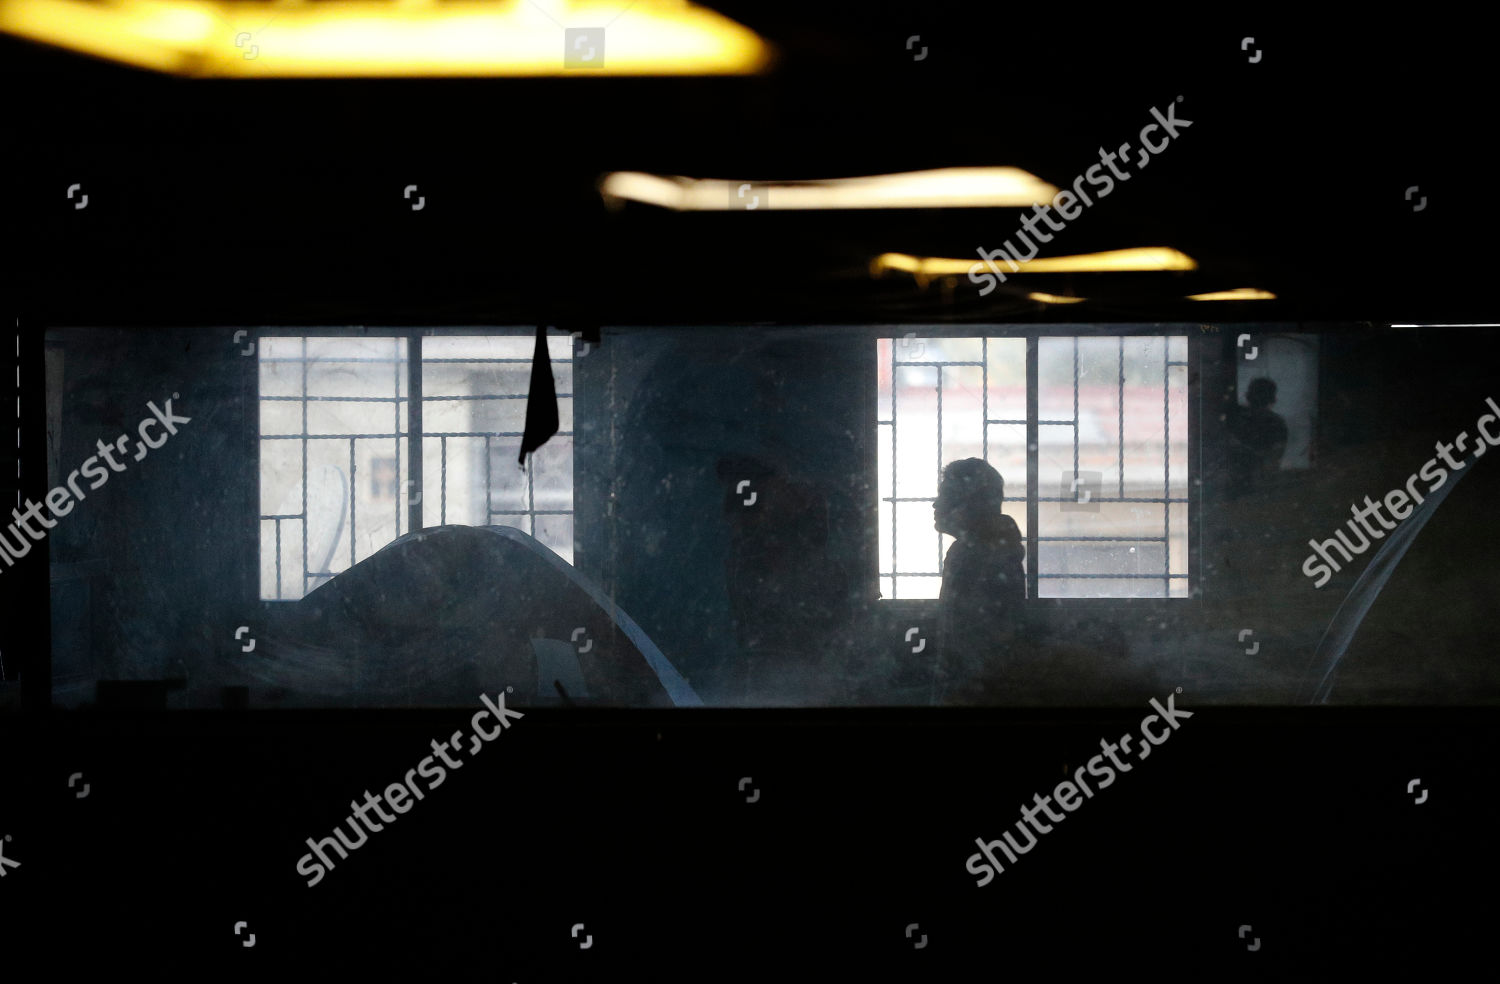 Migrants camp out inside former concert venue Editorial Stock Photo